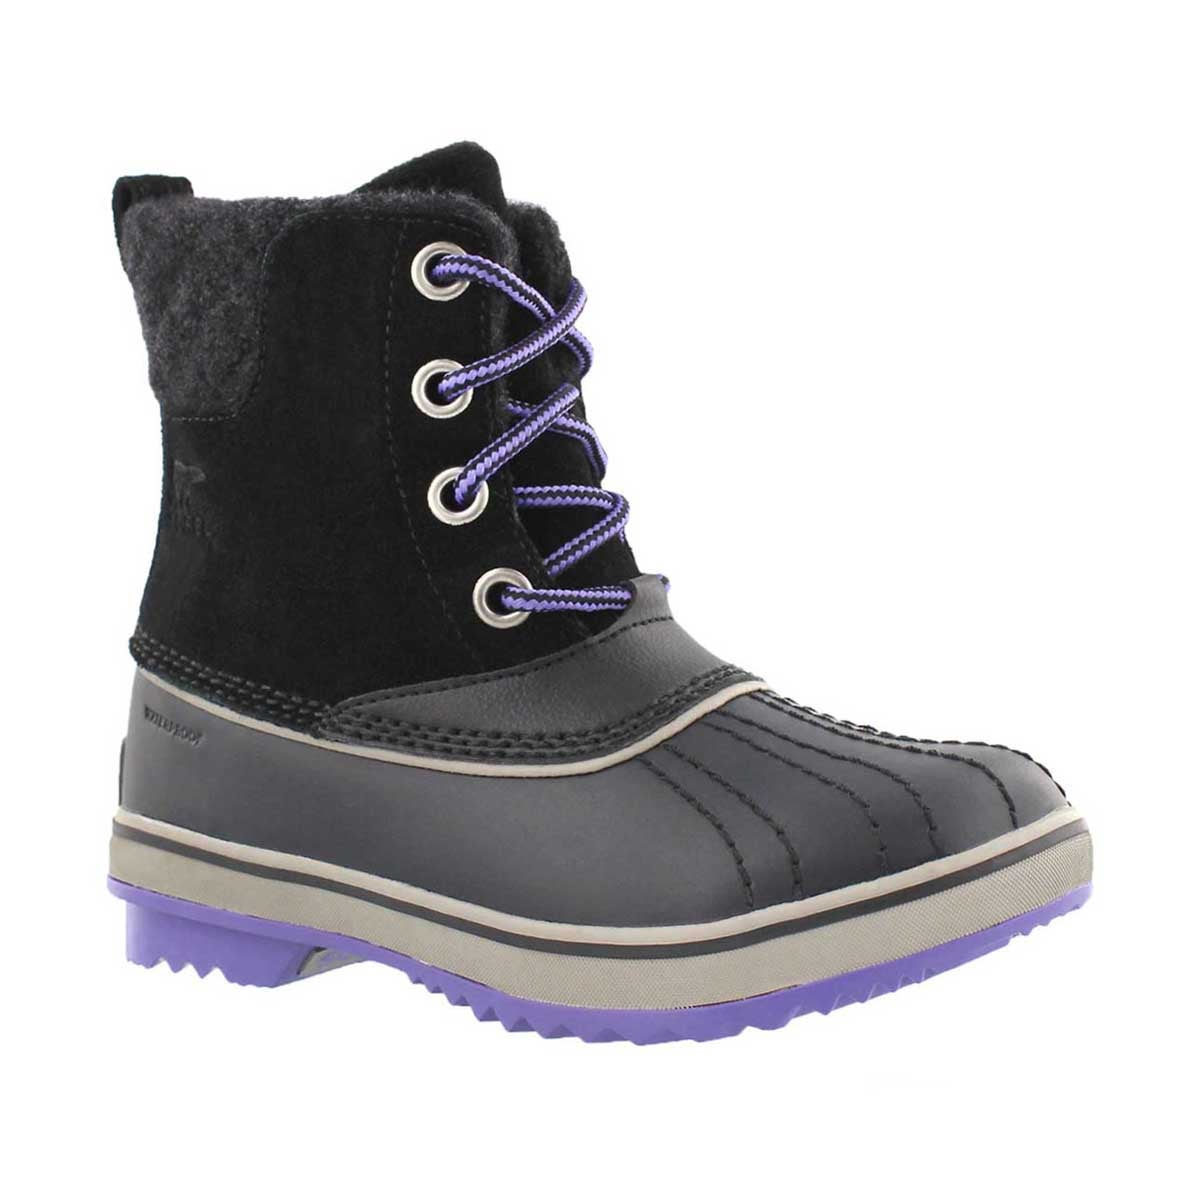 Girls' SLIMPACK II LACE black waterproof boots